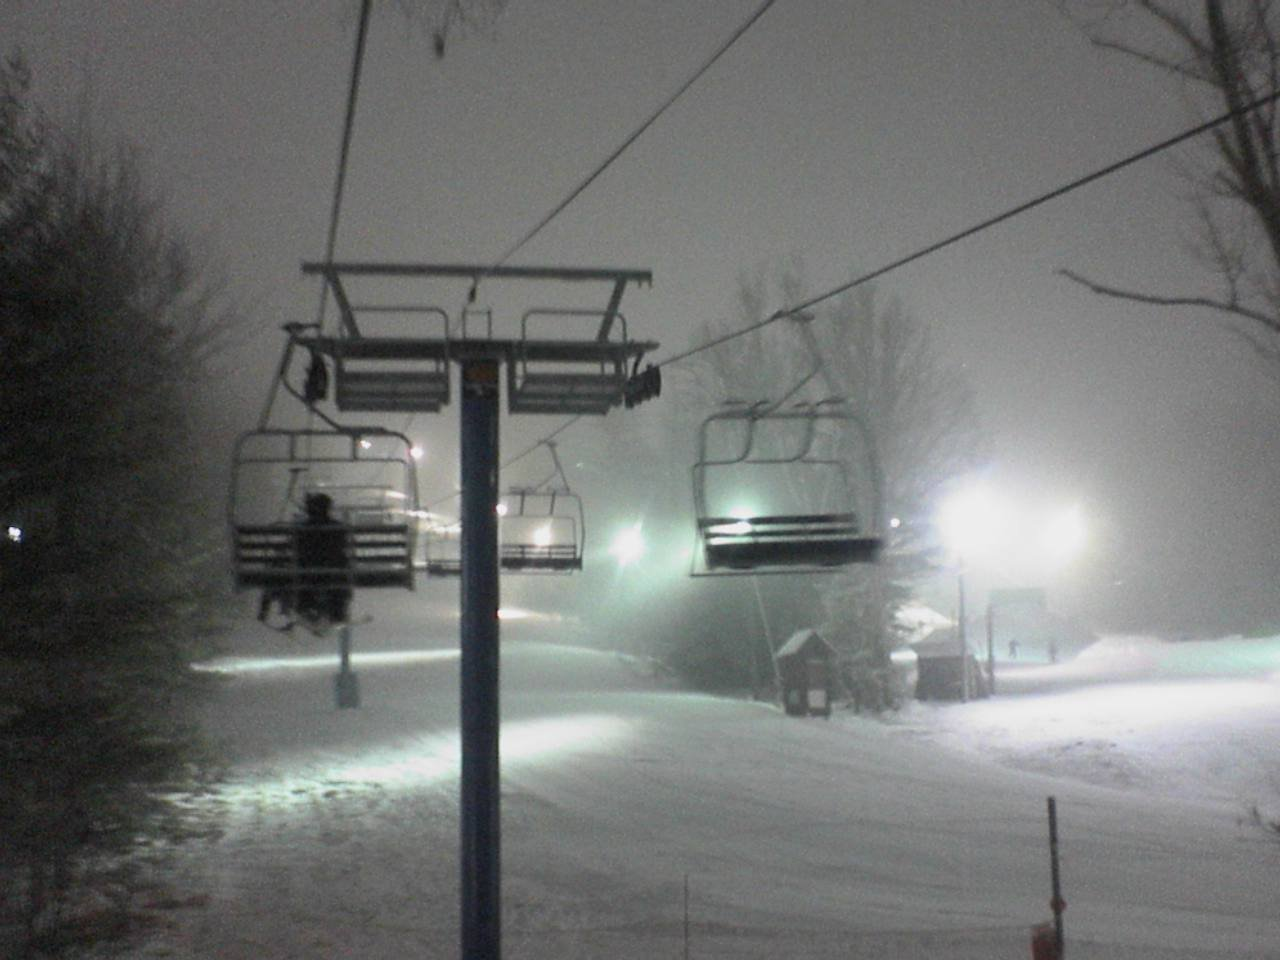 Yeahhh snowin at my mountain